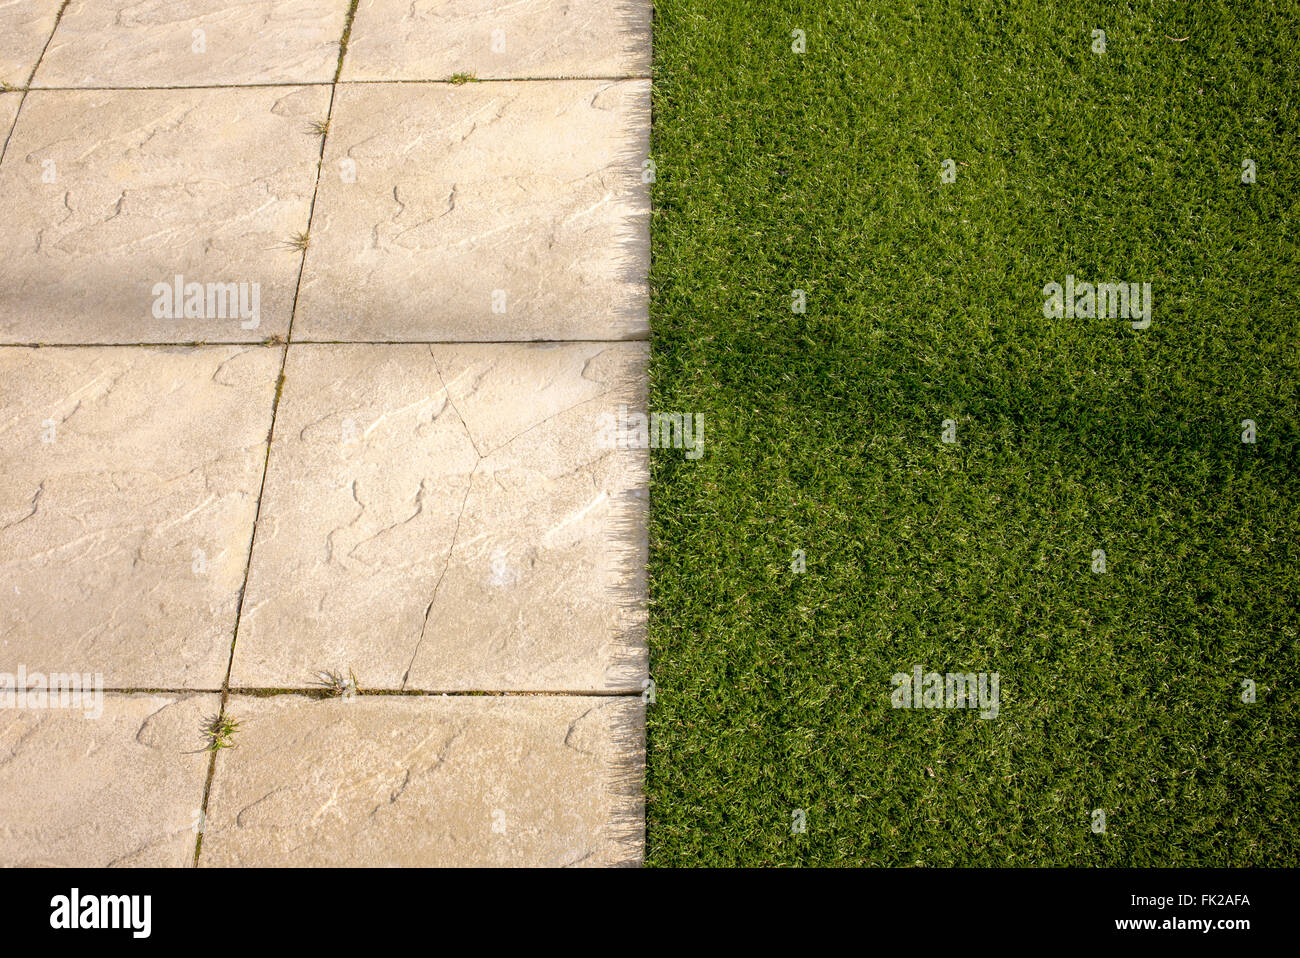 Artificial grass / astro turf meets paving slabs on a new build housing estate. Bicester, Oxfordshire, England Stock Photo